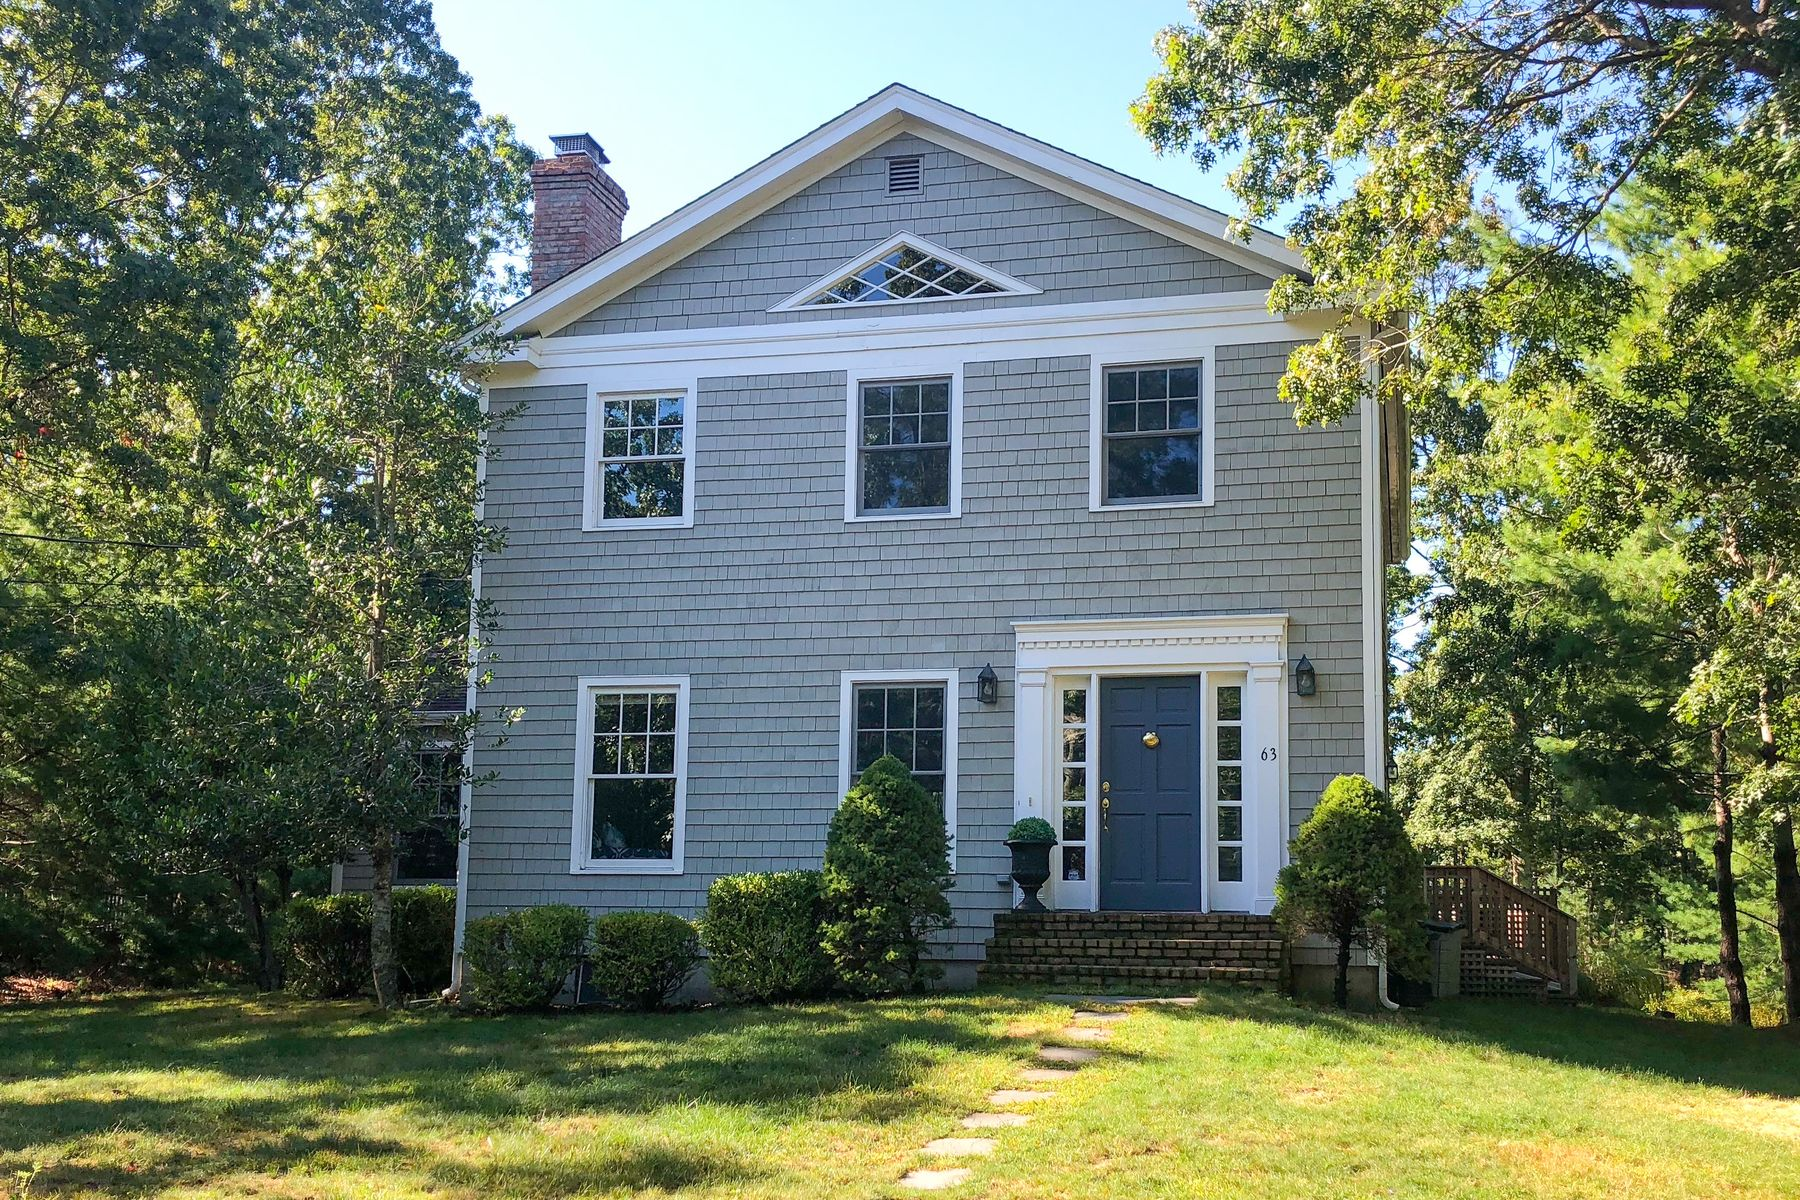 Single Family Home for sale in 63 Edwards Hole Rd, East Hampton, NY ,11937